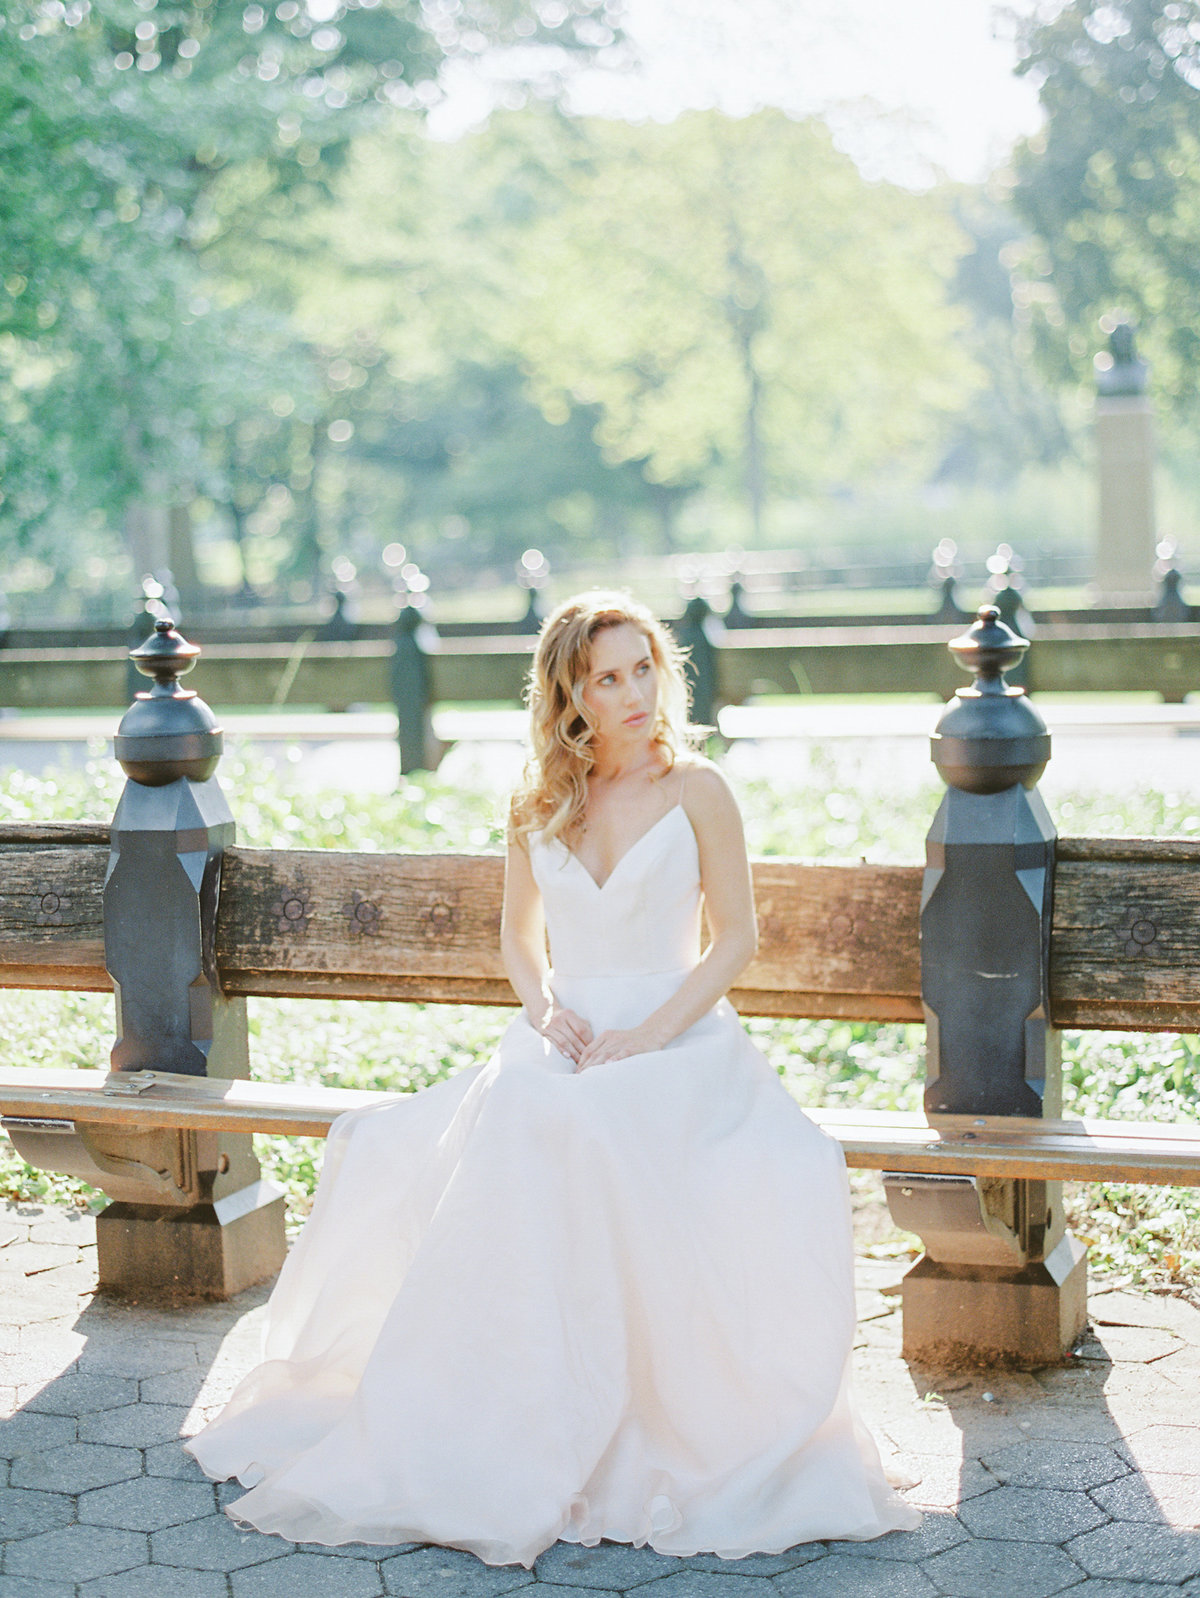 destination fine art wedding photographer NYC central park 200